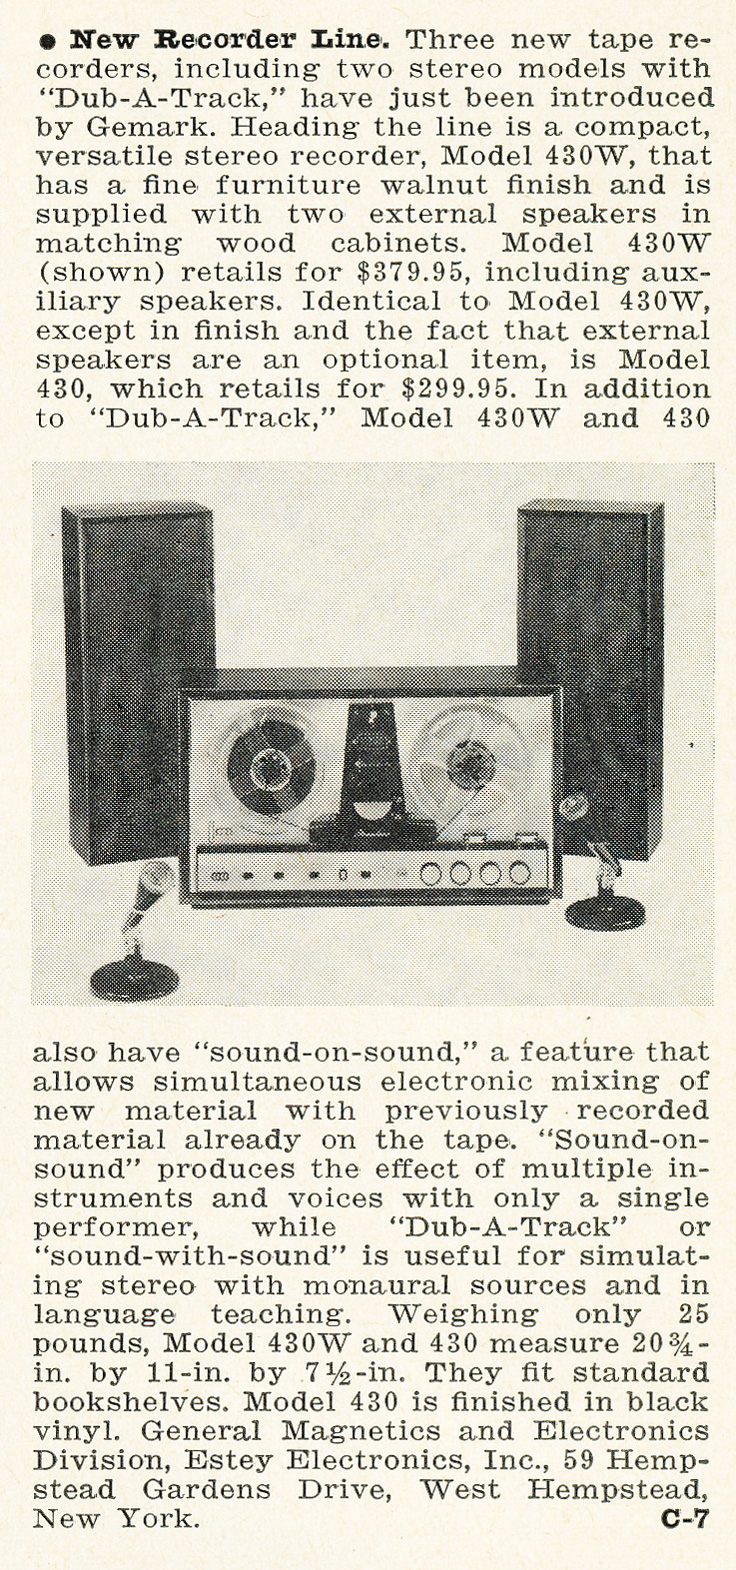 1963 ad for the General magnetics reel to reel tape recorder in   Reel2ReelTexas.com's vintage recording collection